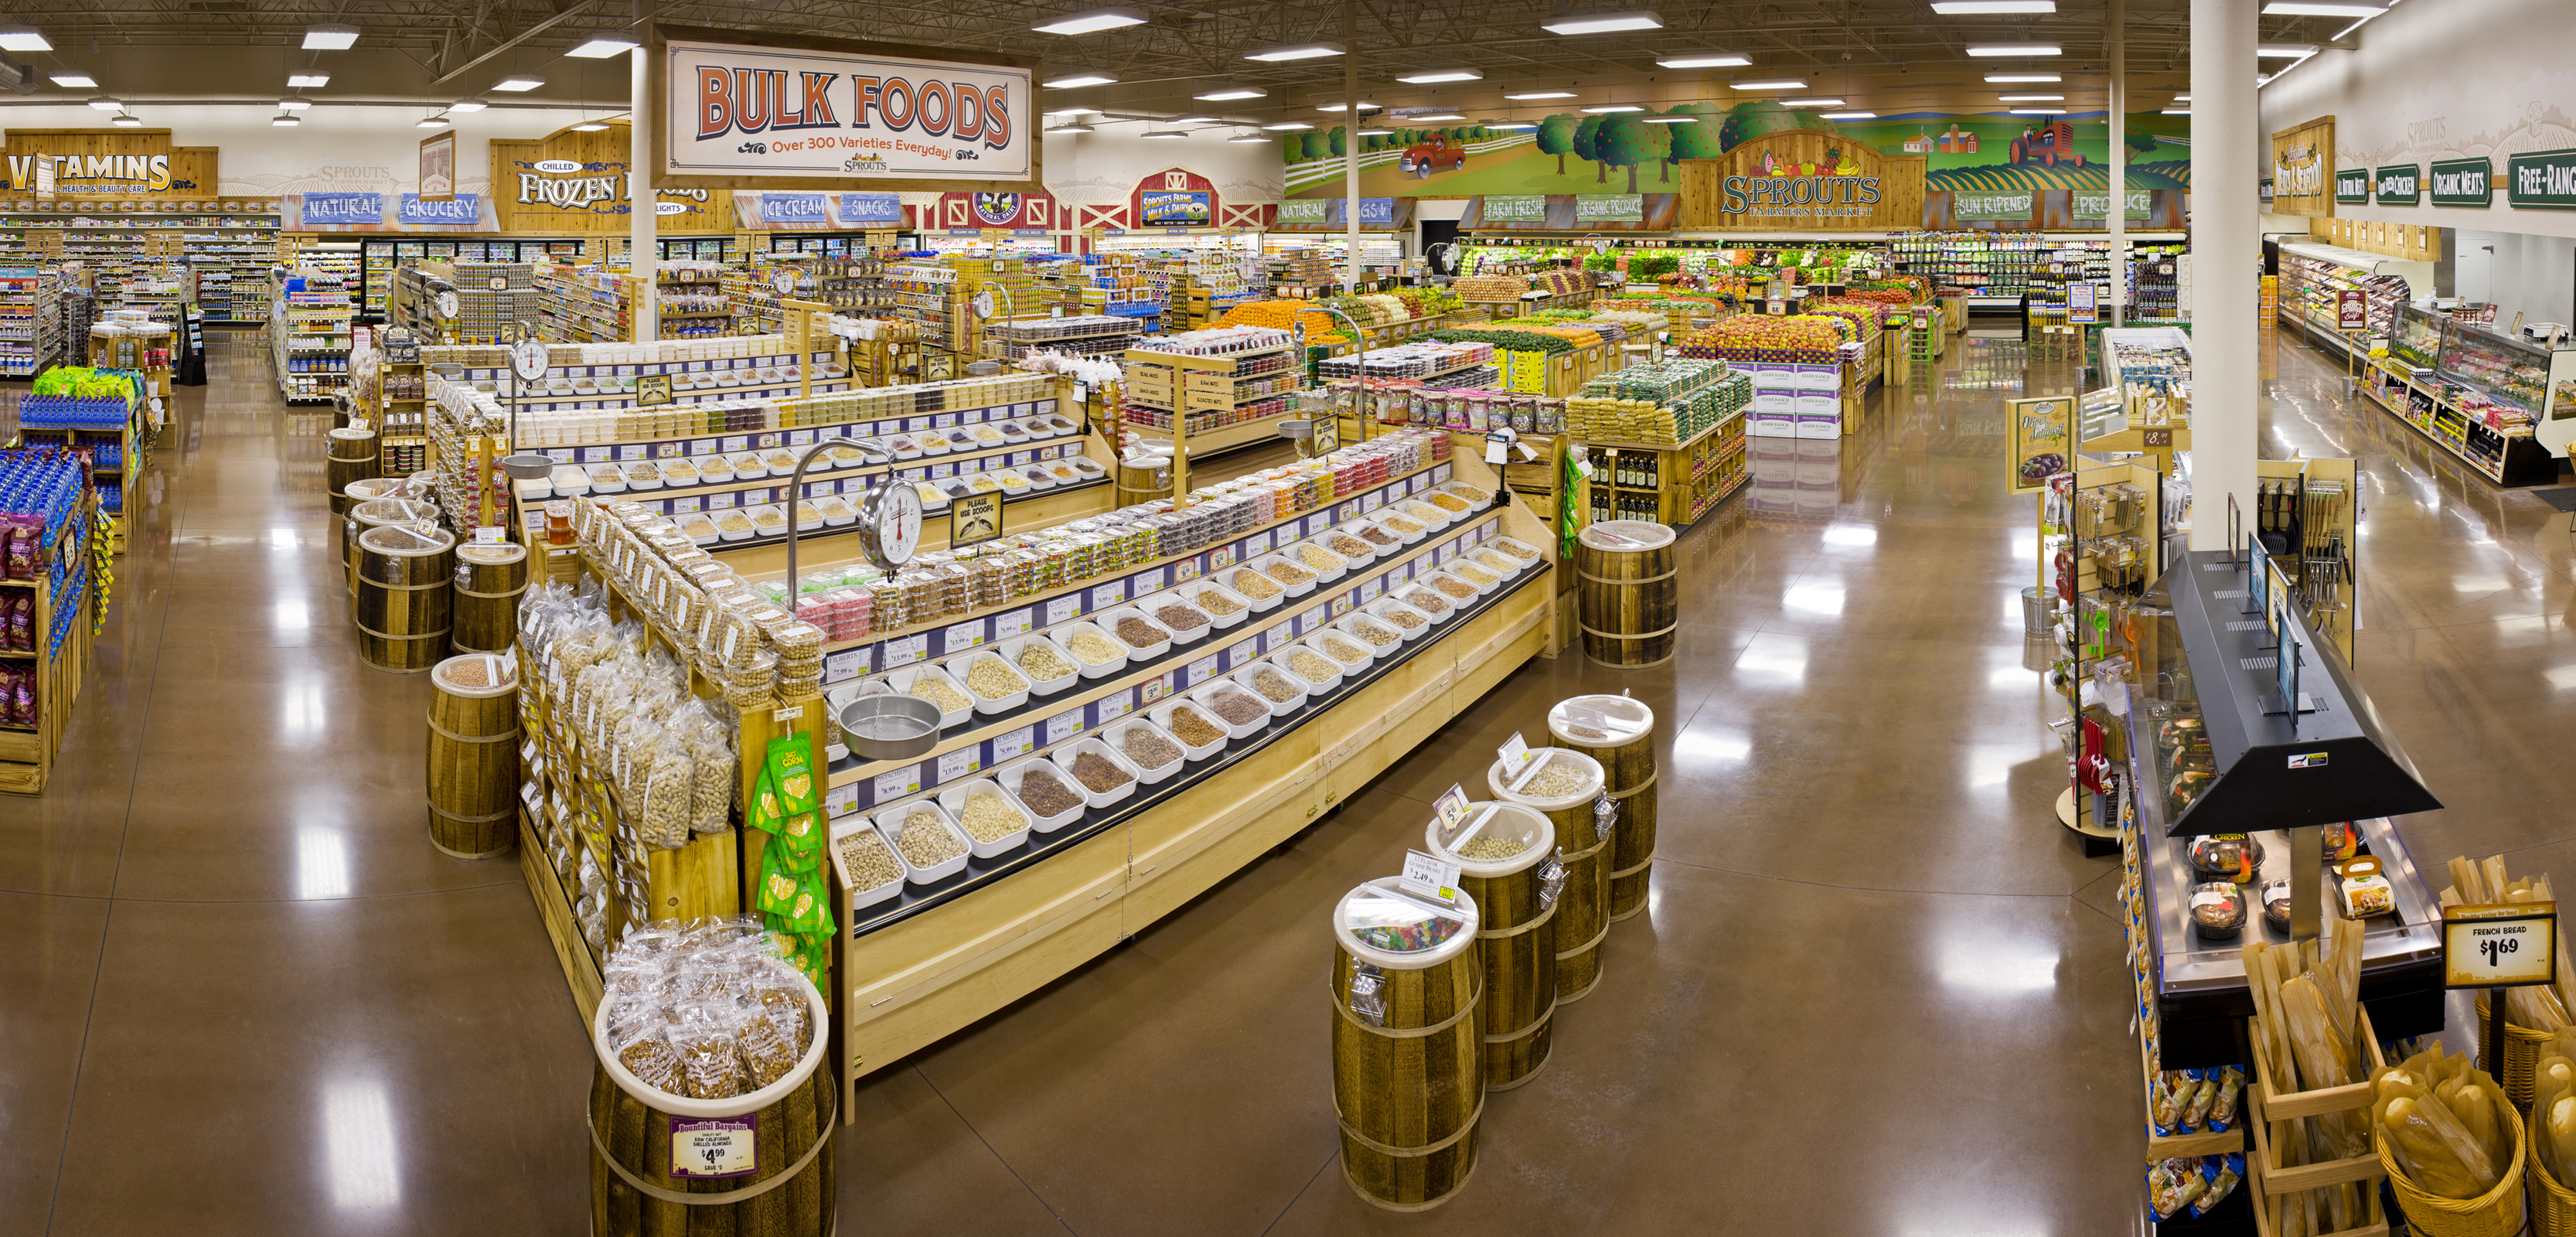 Sprouts Farmers Markets image